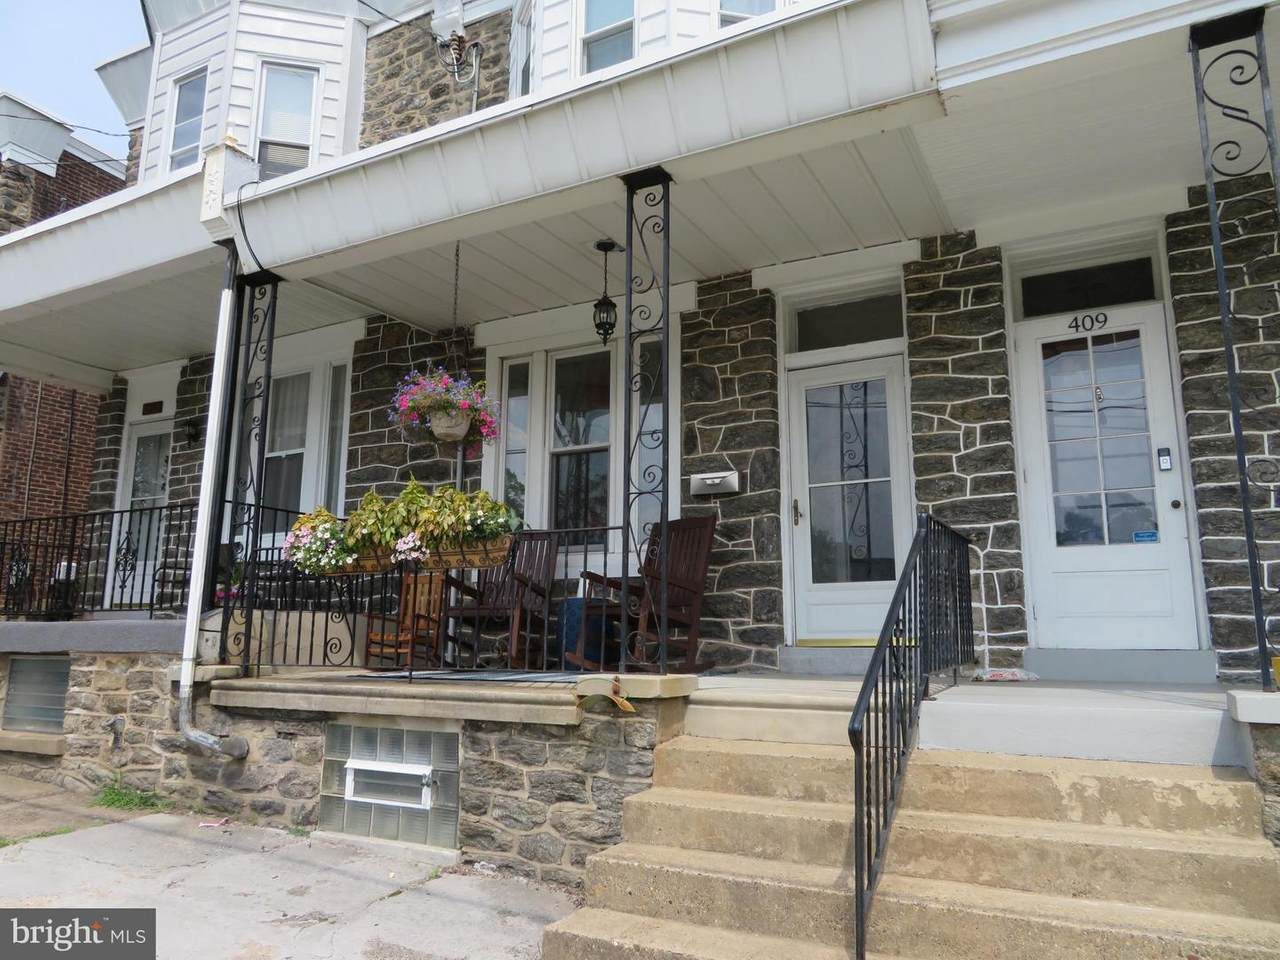 411 Righter Street - Photo 1